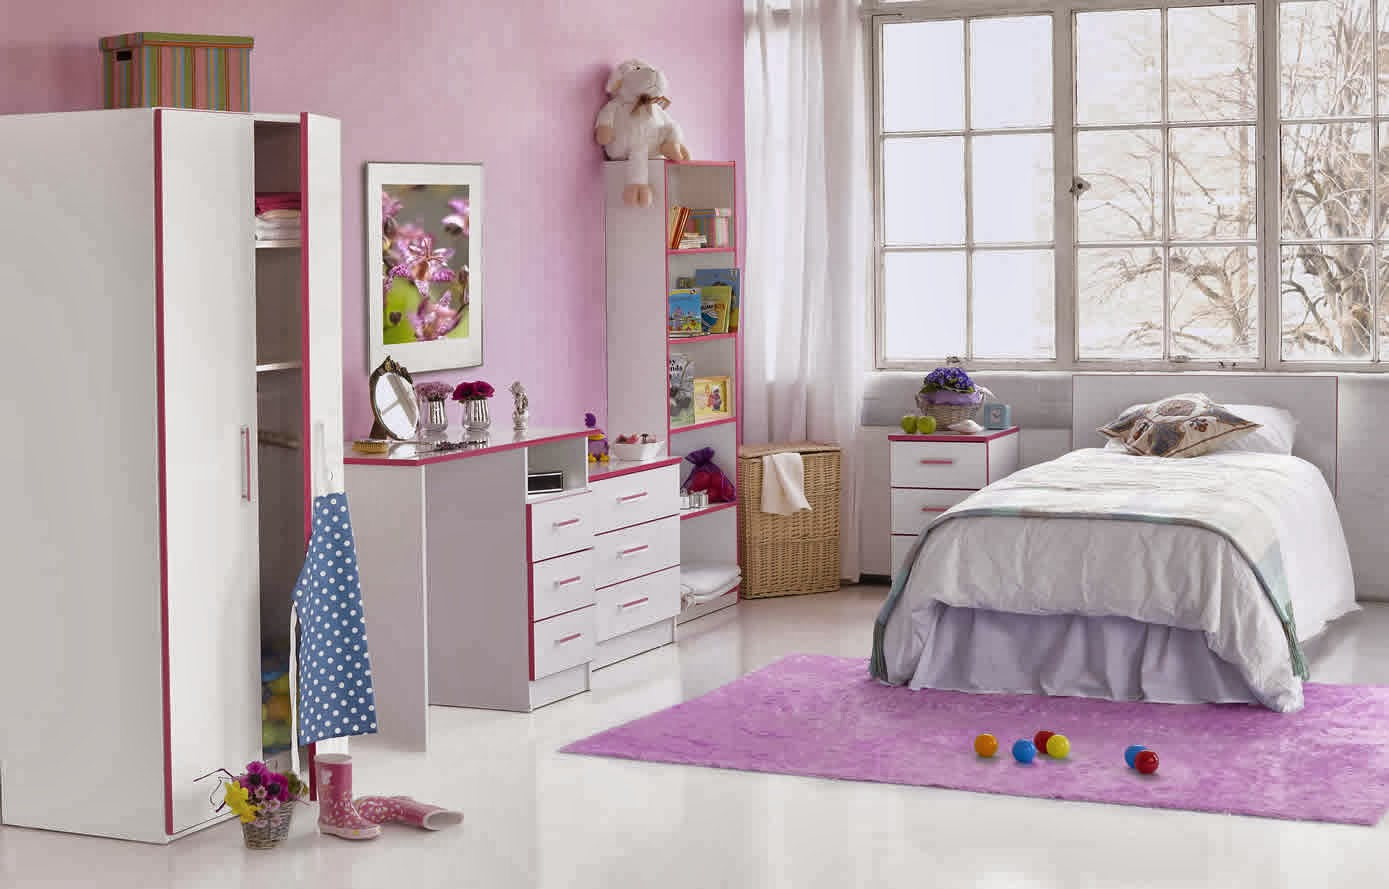 All 4u hd wallpaper free download kid bedroom sets wallpapers free download - Bedroom farnitures hd ...